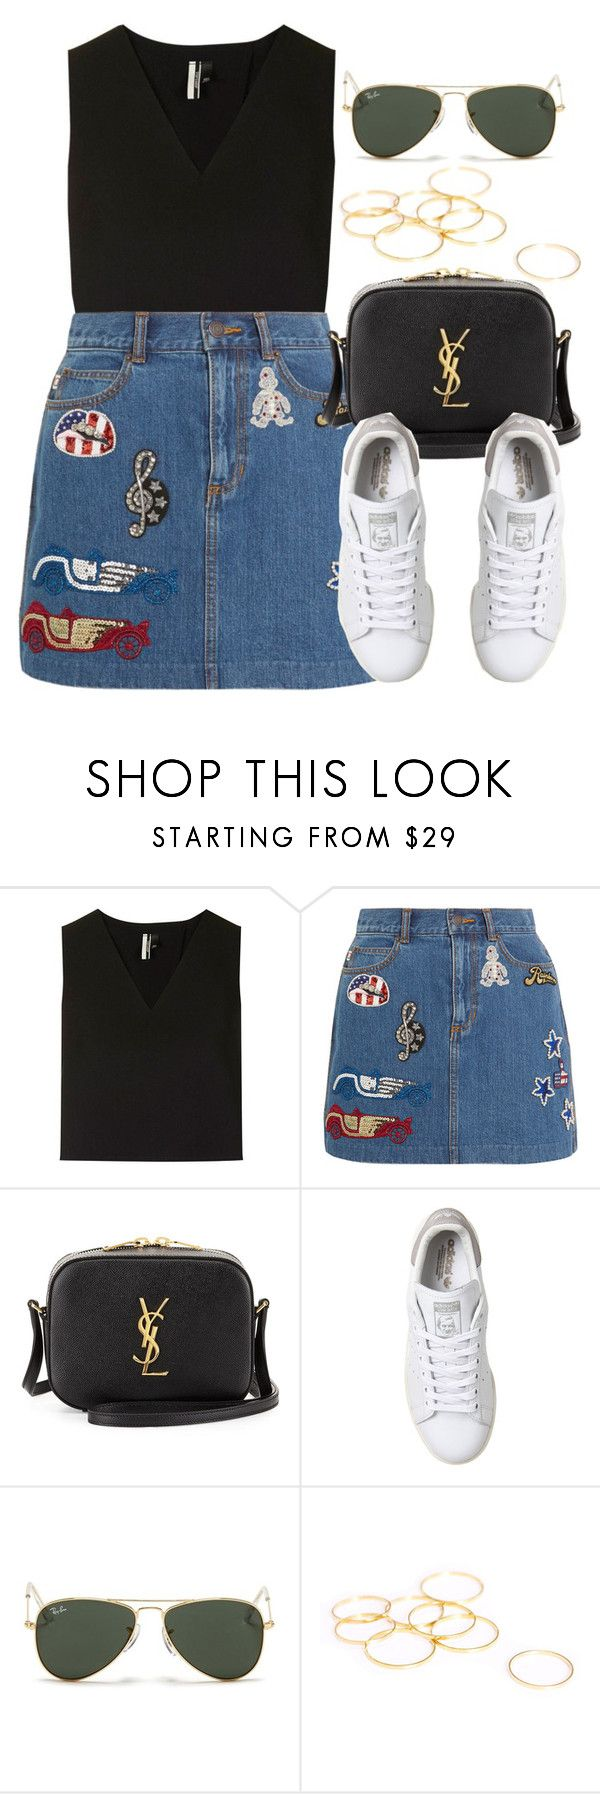 """Style #10246"" by vany-alvarado ❤ liked on Polyvore featuring Topshop, Marc Jacobs, Yves Saint Laurent, adidas and Ray-Ban"